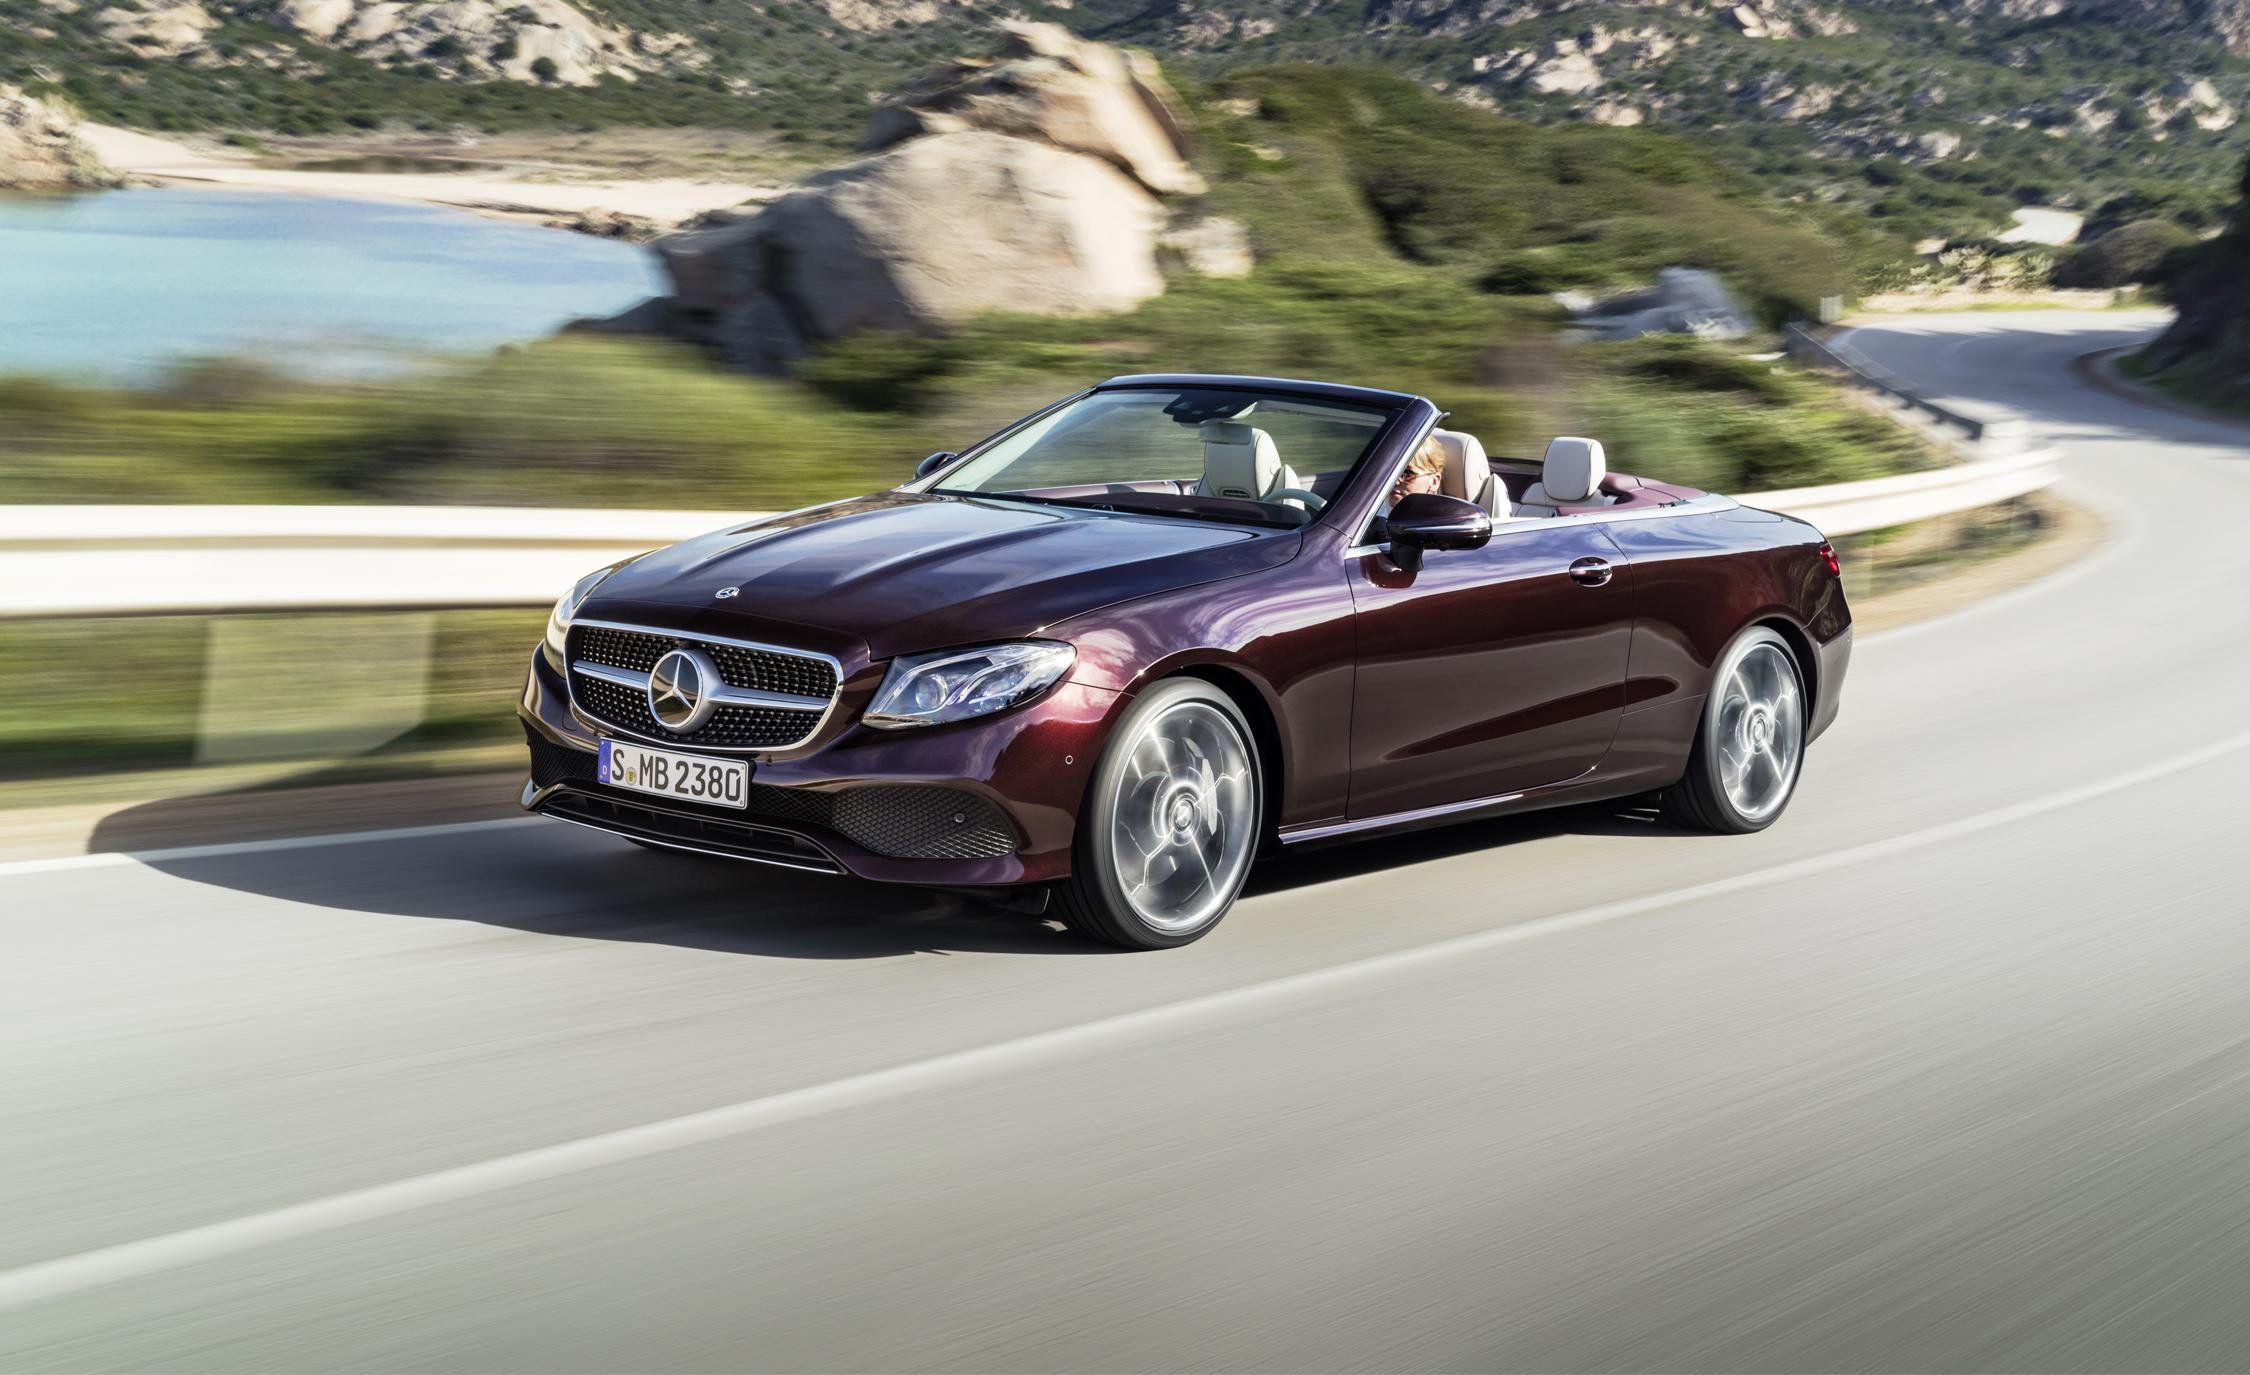 2018 mercedes benz e class cabriolet revealed gains elegance space and style. Black Bedroom Furniture Sets. Home Design Ideas